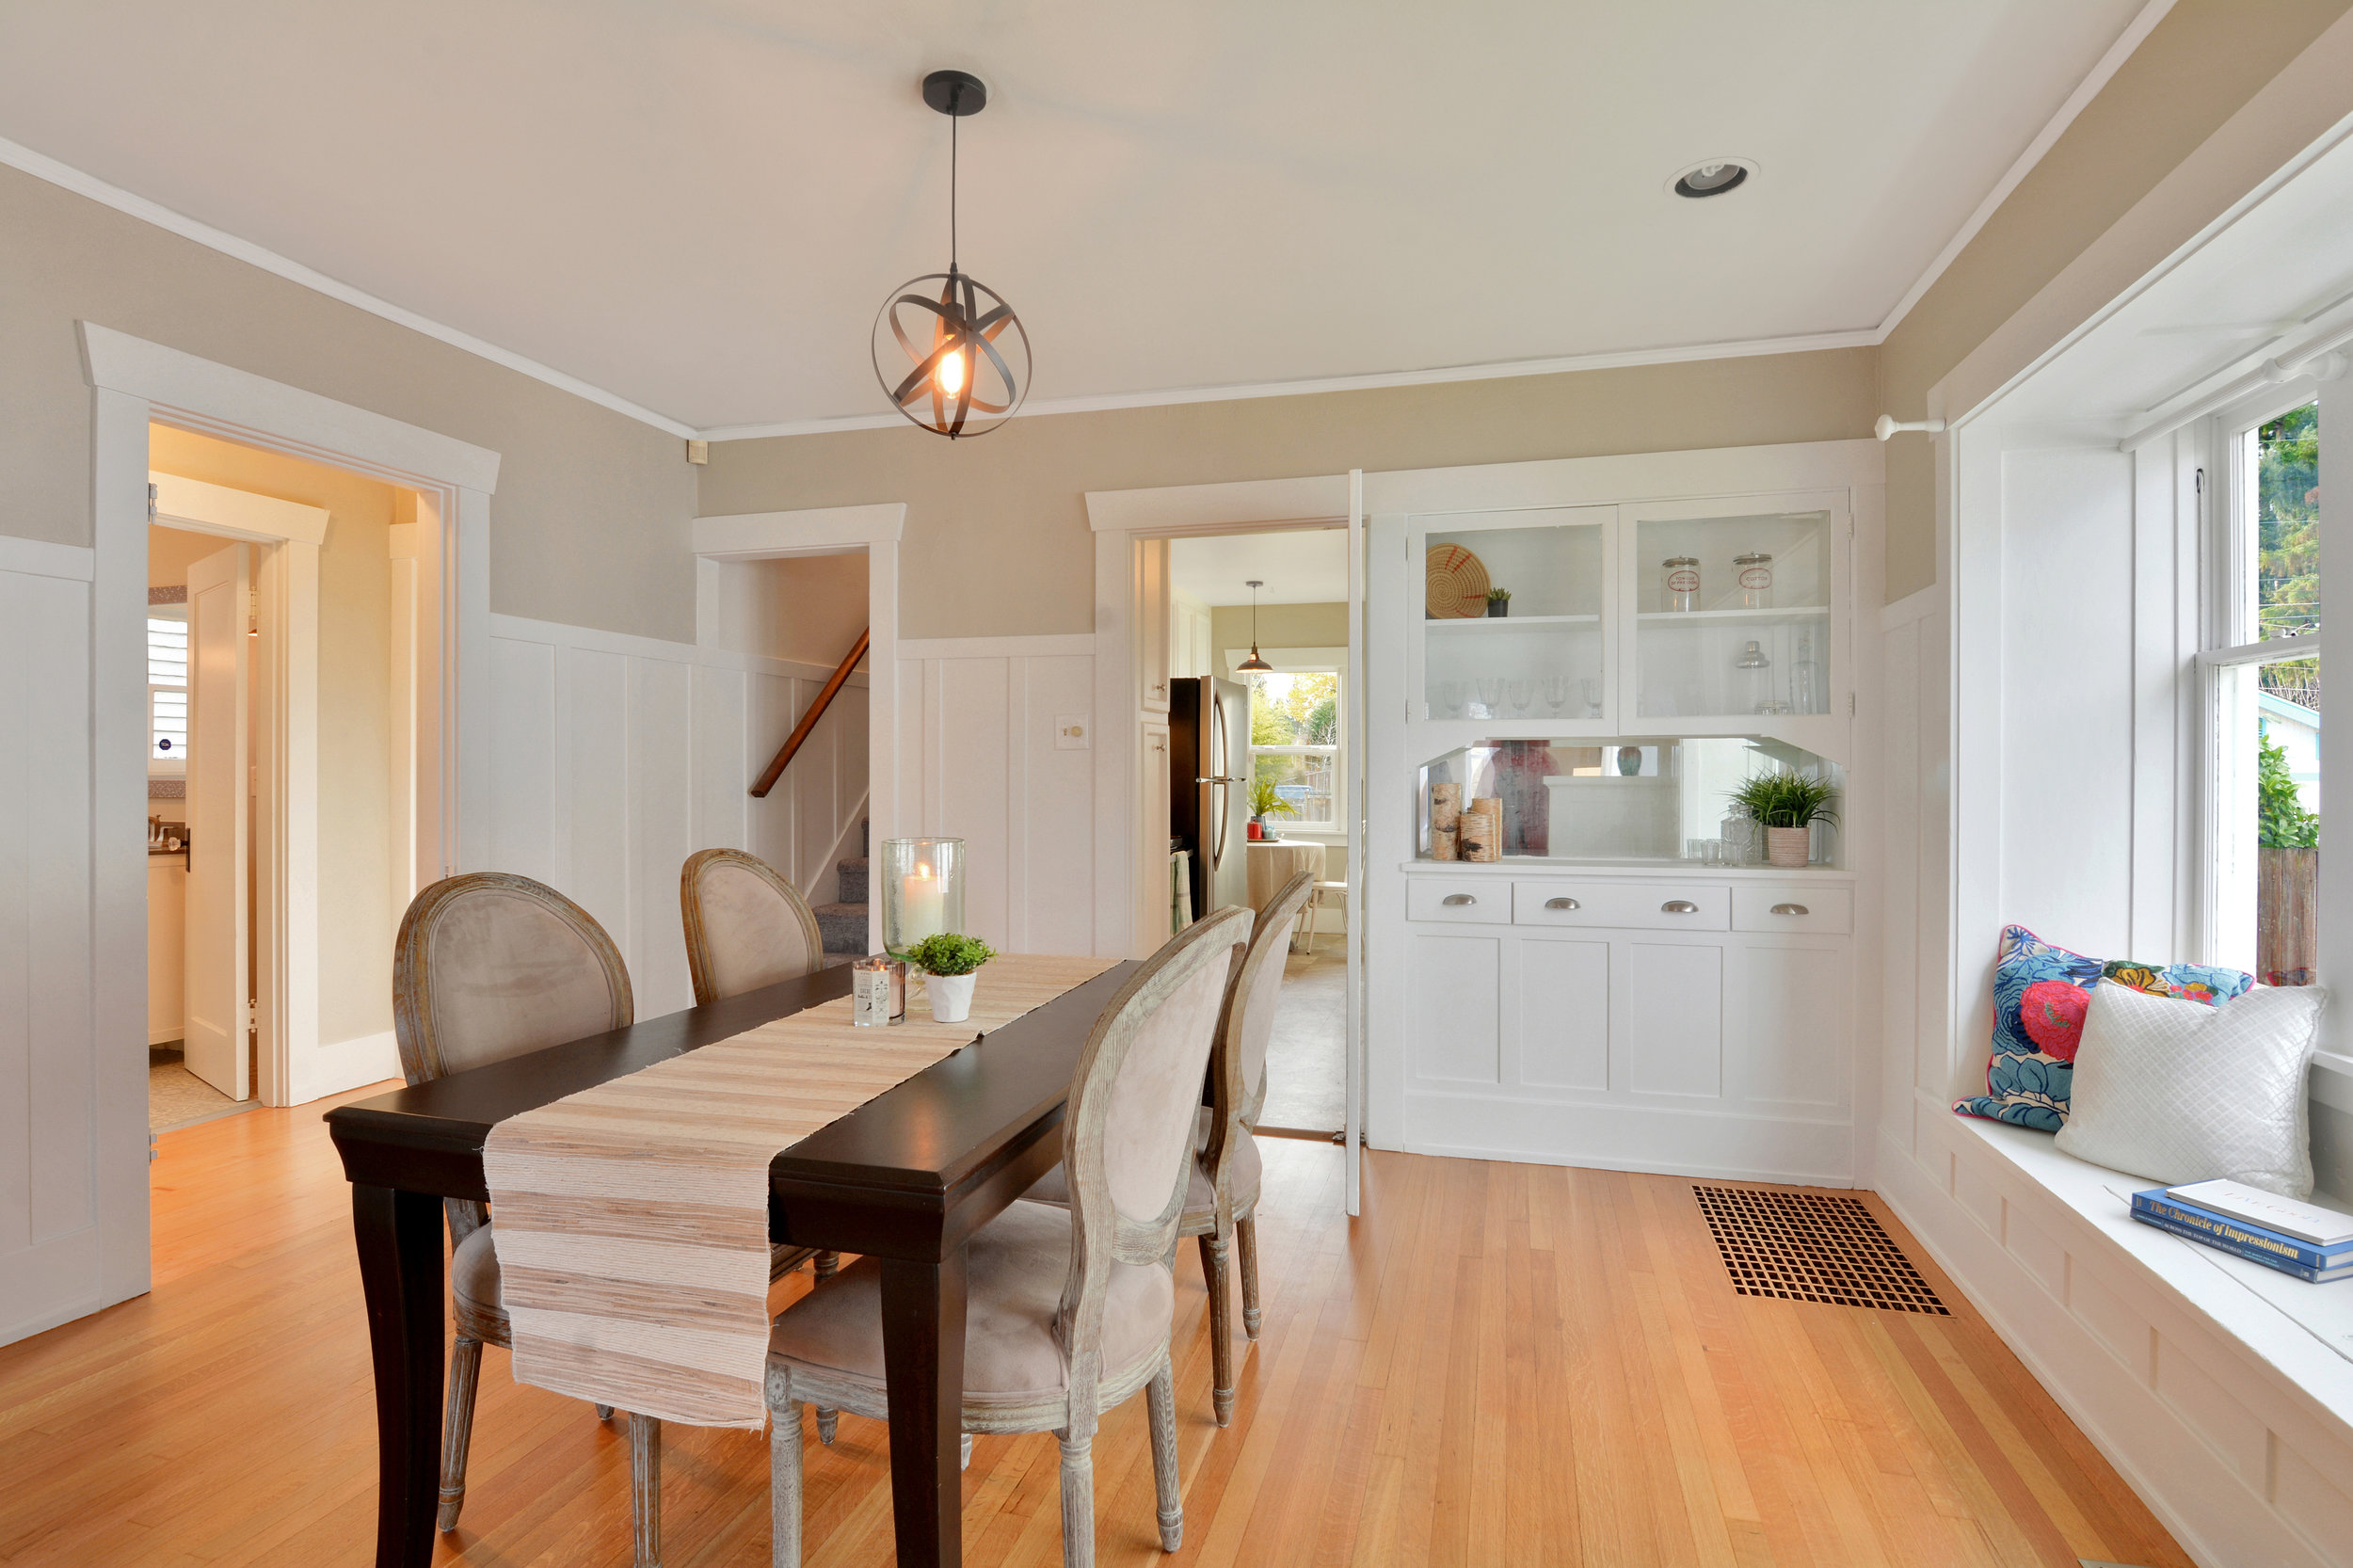 This spacious dining room opens into the main floor hallway on the left, the stairwell to the upper floor, and opens into the kitchen (or the door may be closed if desired).